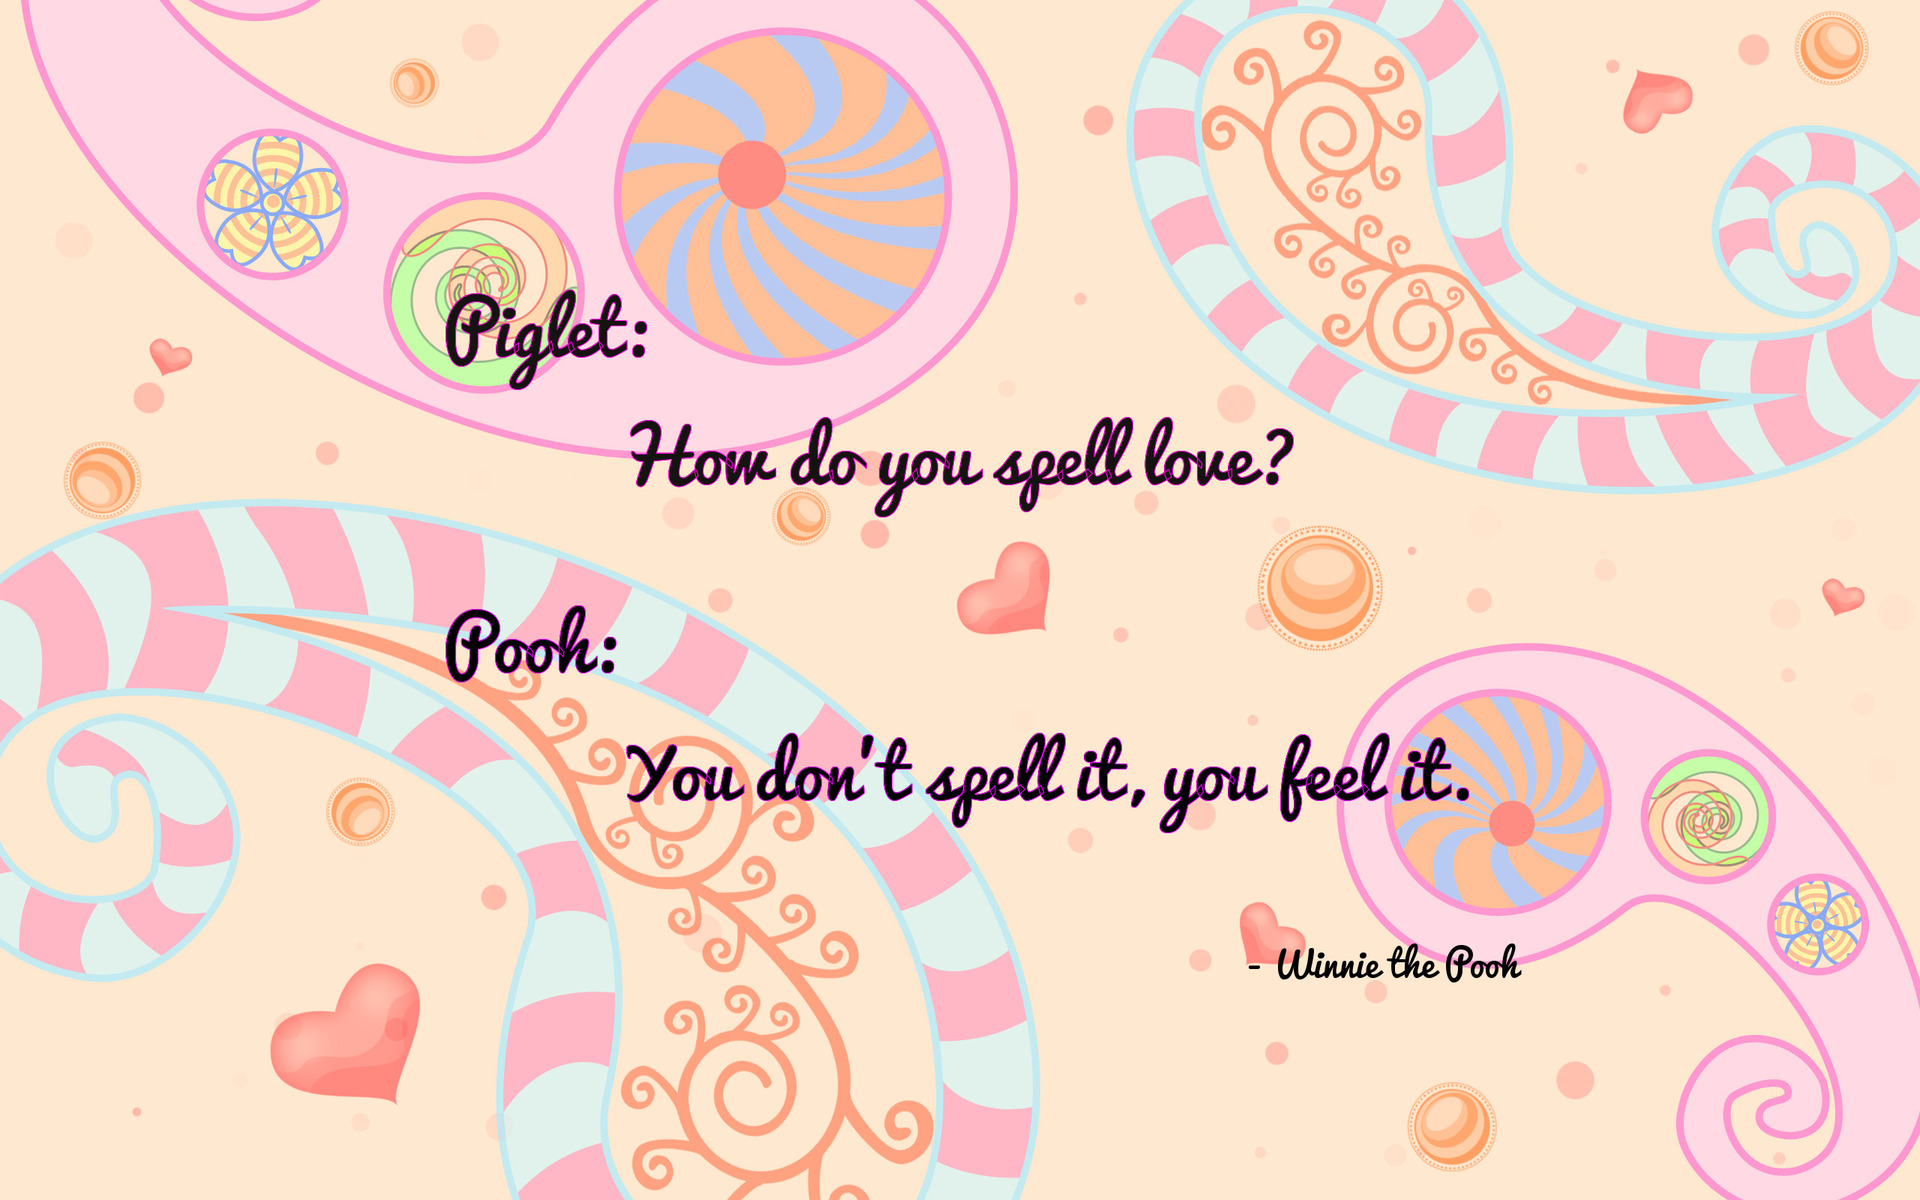 Cute Love Quotes Wallpapers Wallpapertag: Cute Love Quotes Wallpapers Wide #4255 Wallpaper